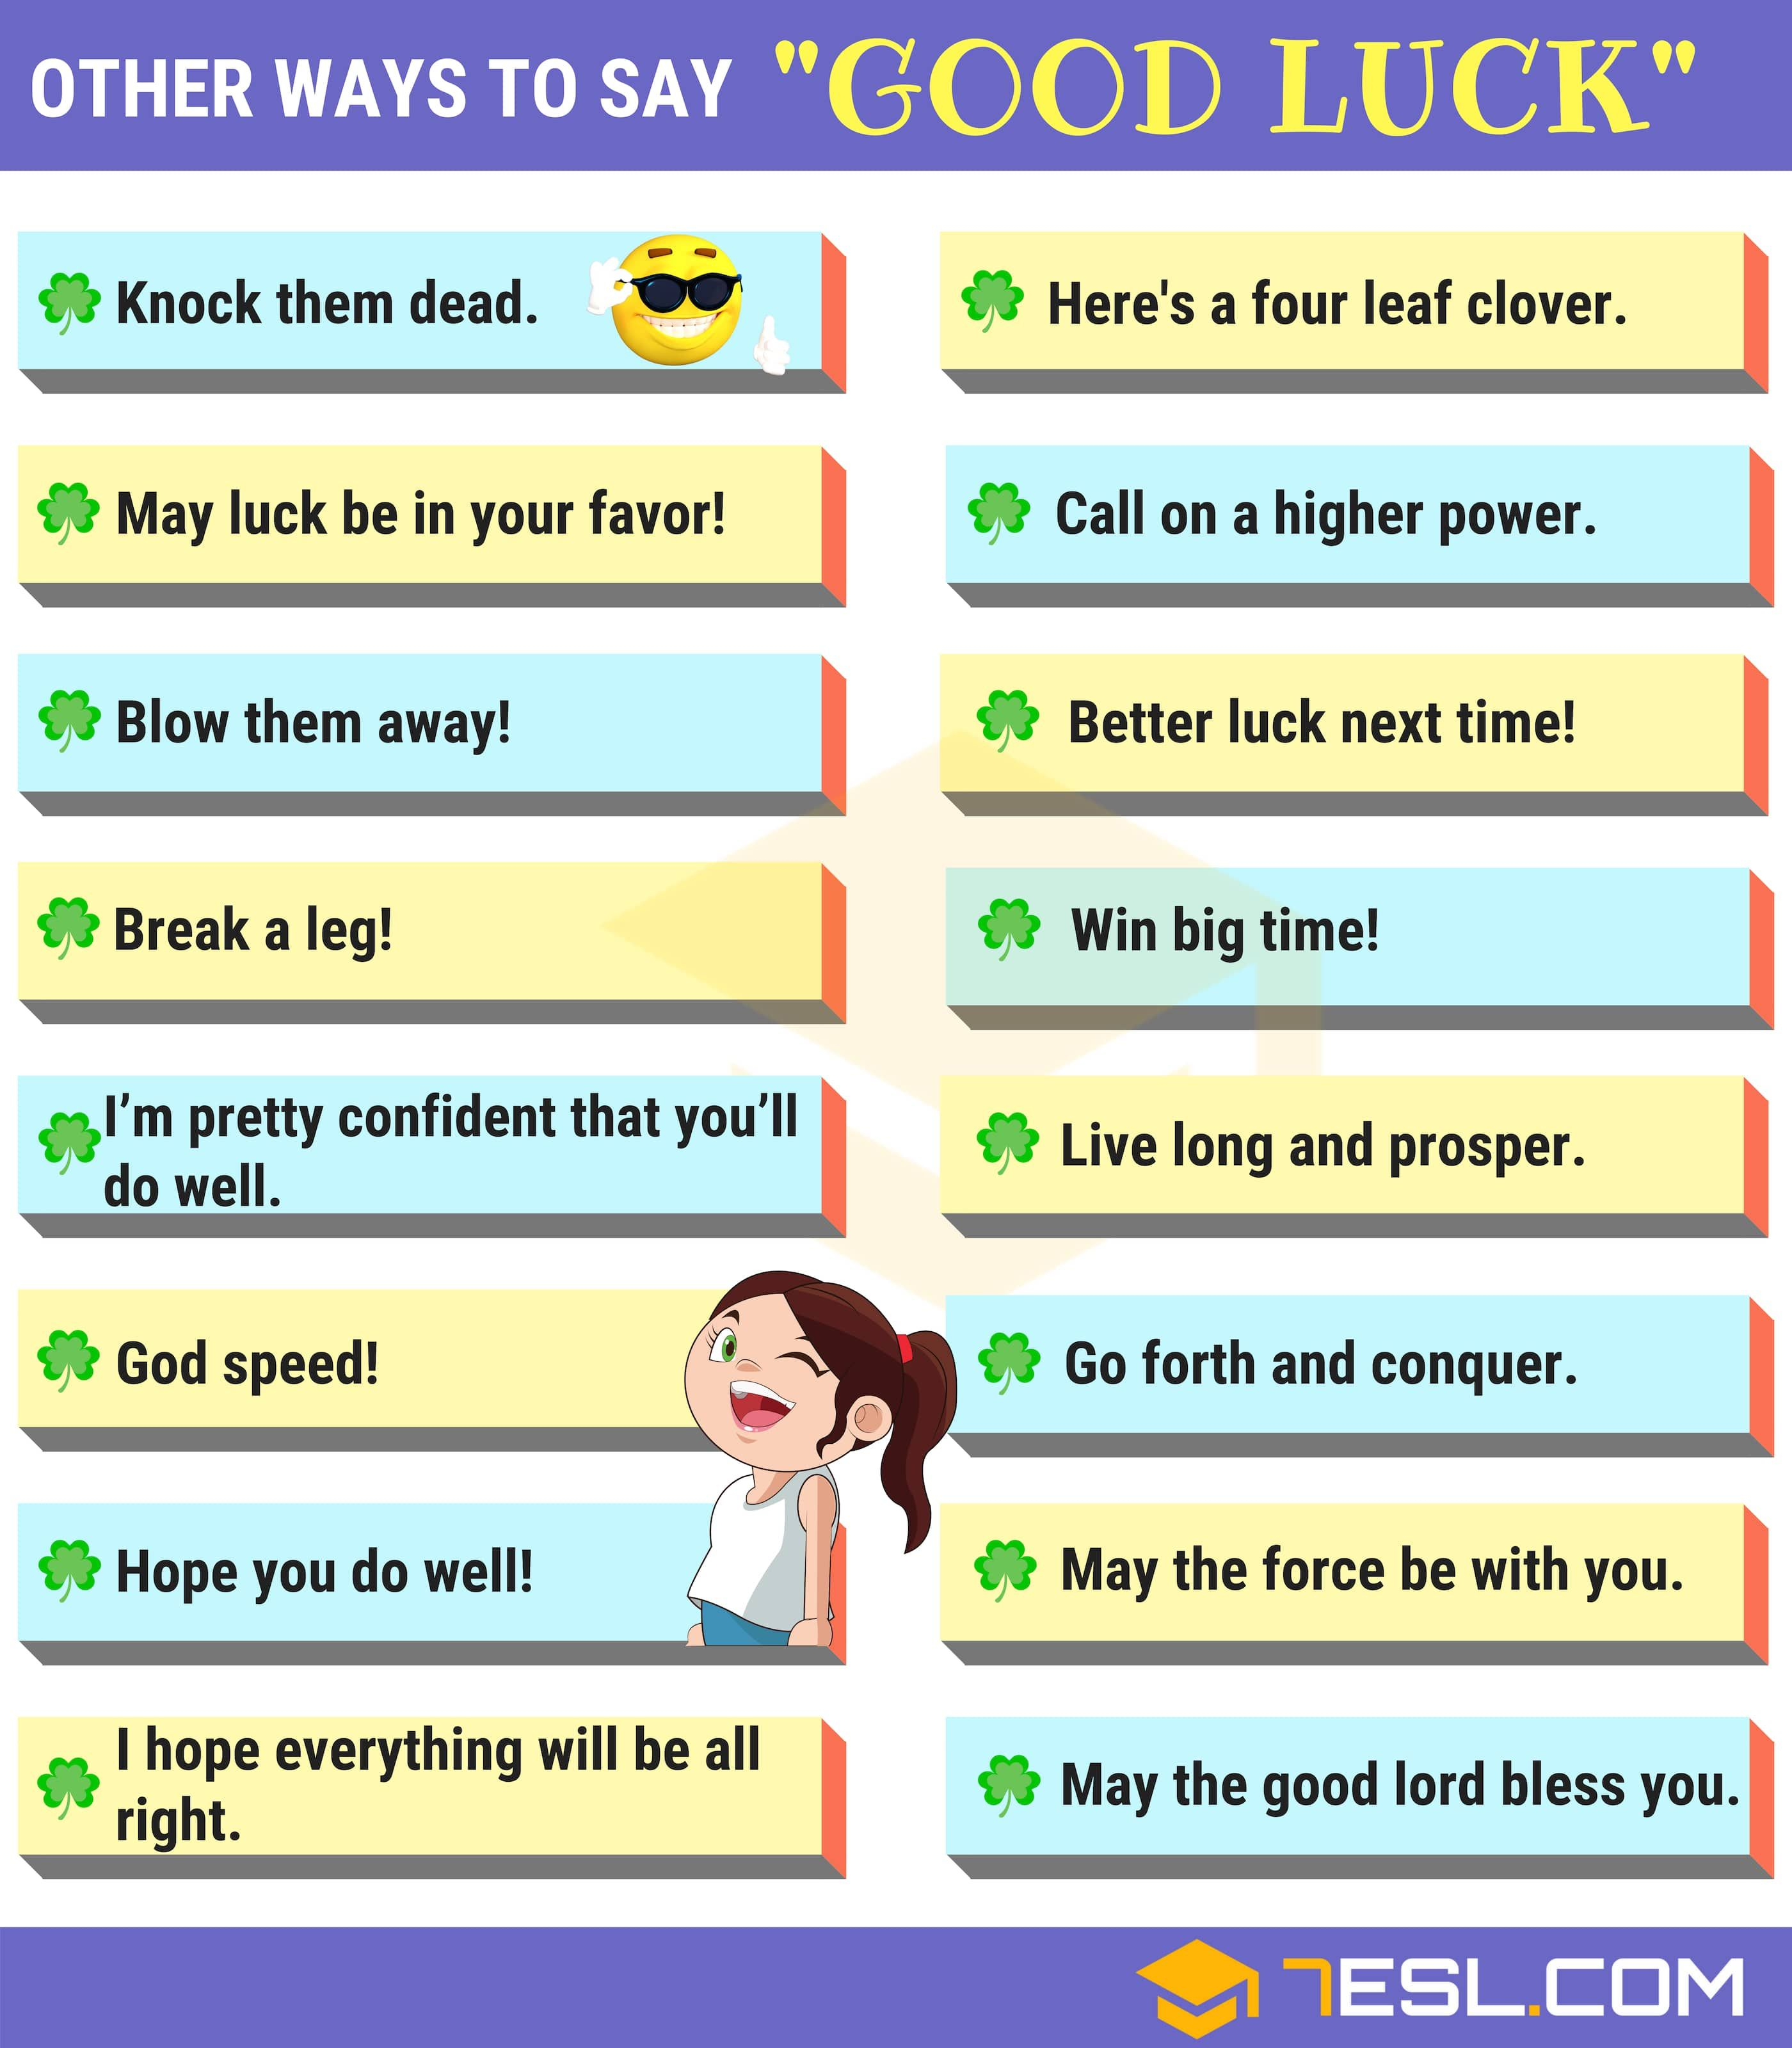 Good Luck Synonyms 50 Ways To Say Good Luck 7 E S L Learn English Words English Phrases English Vocabulary In the sense of blithe. pinterest